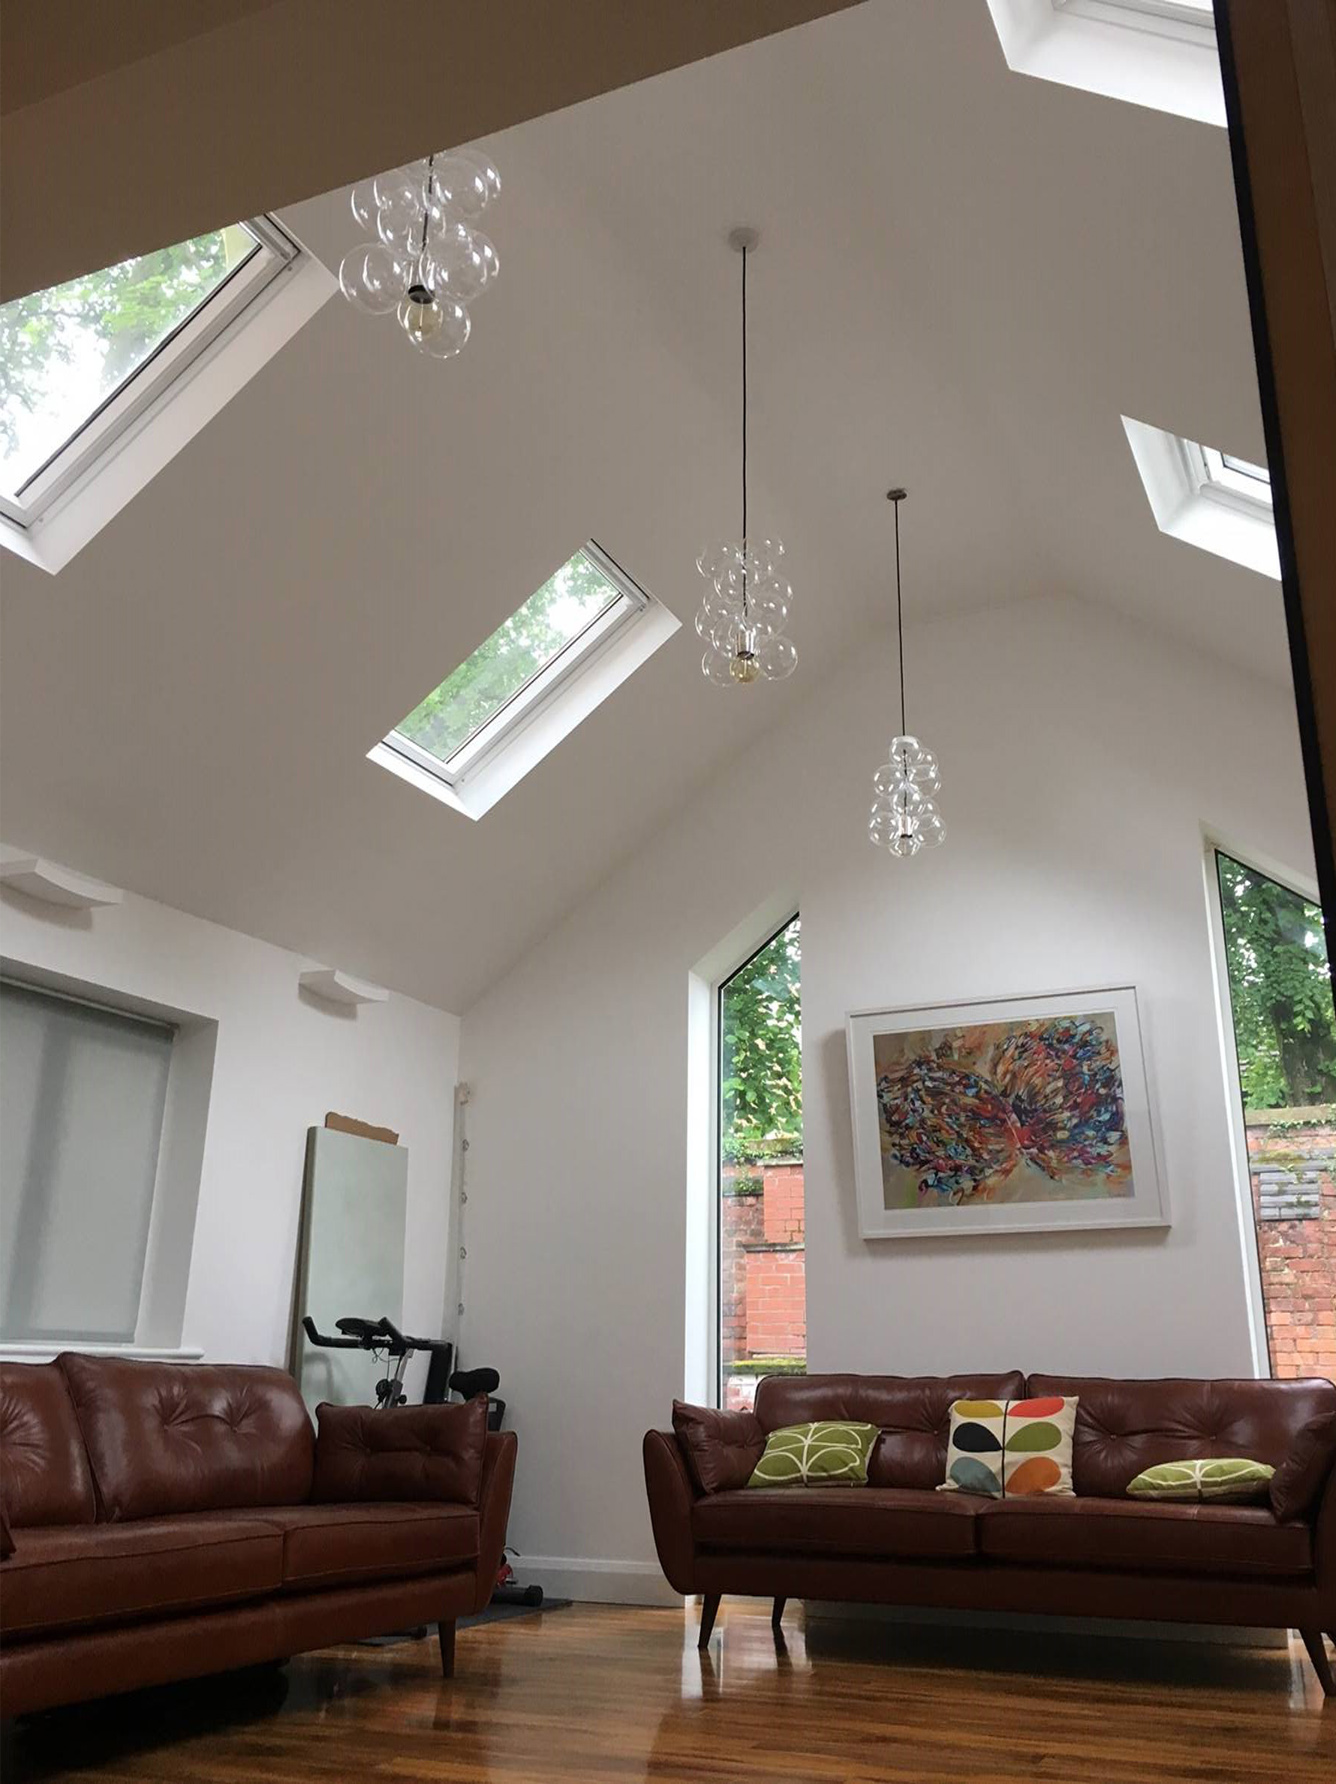 Renovated barn conversion in Manchester